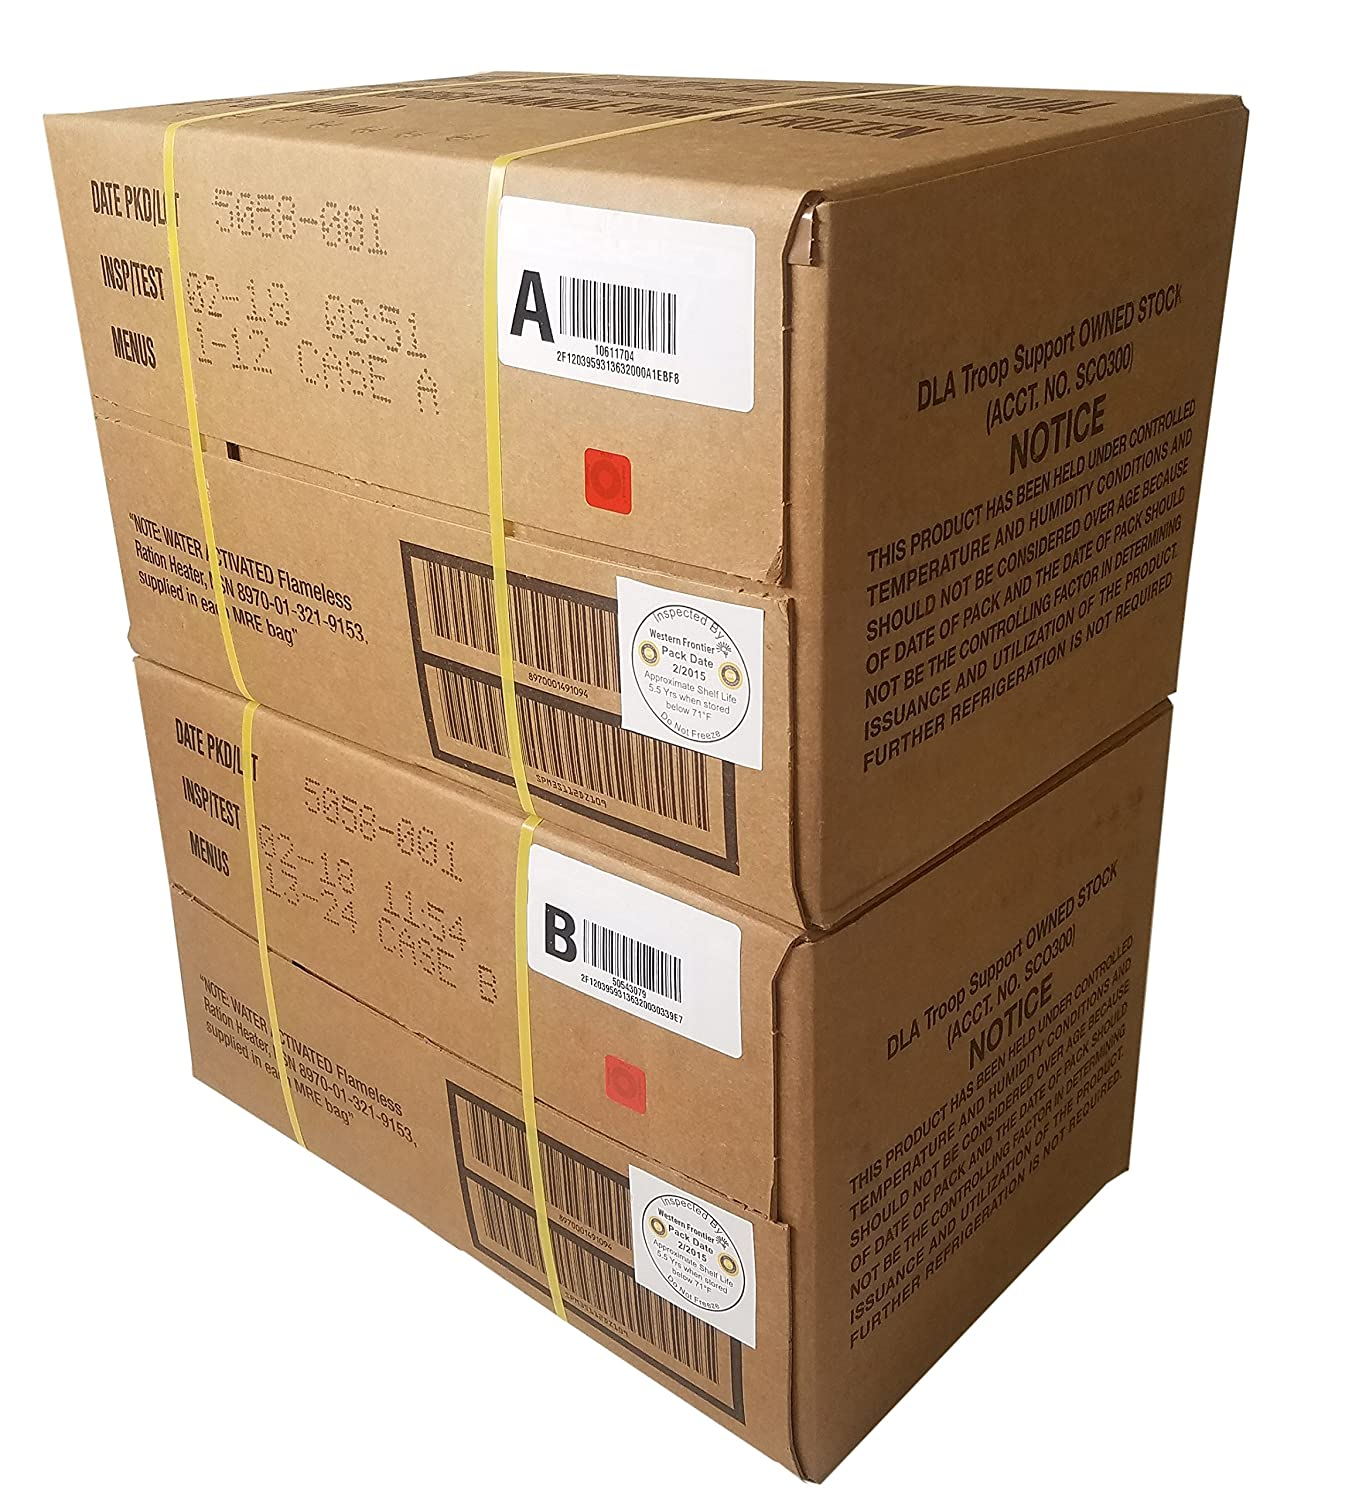 ULTIMATE MRE Case A and Case B Bundle, 24 Meals with 2018 Inspection Date   Military Surplus Meal Ready to Eat with Western Frontier's Inspection and